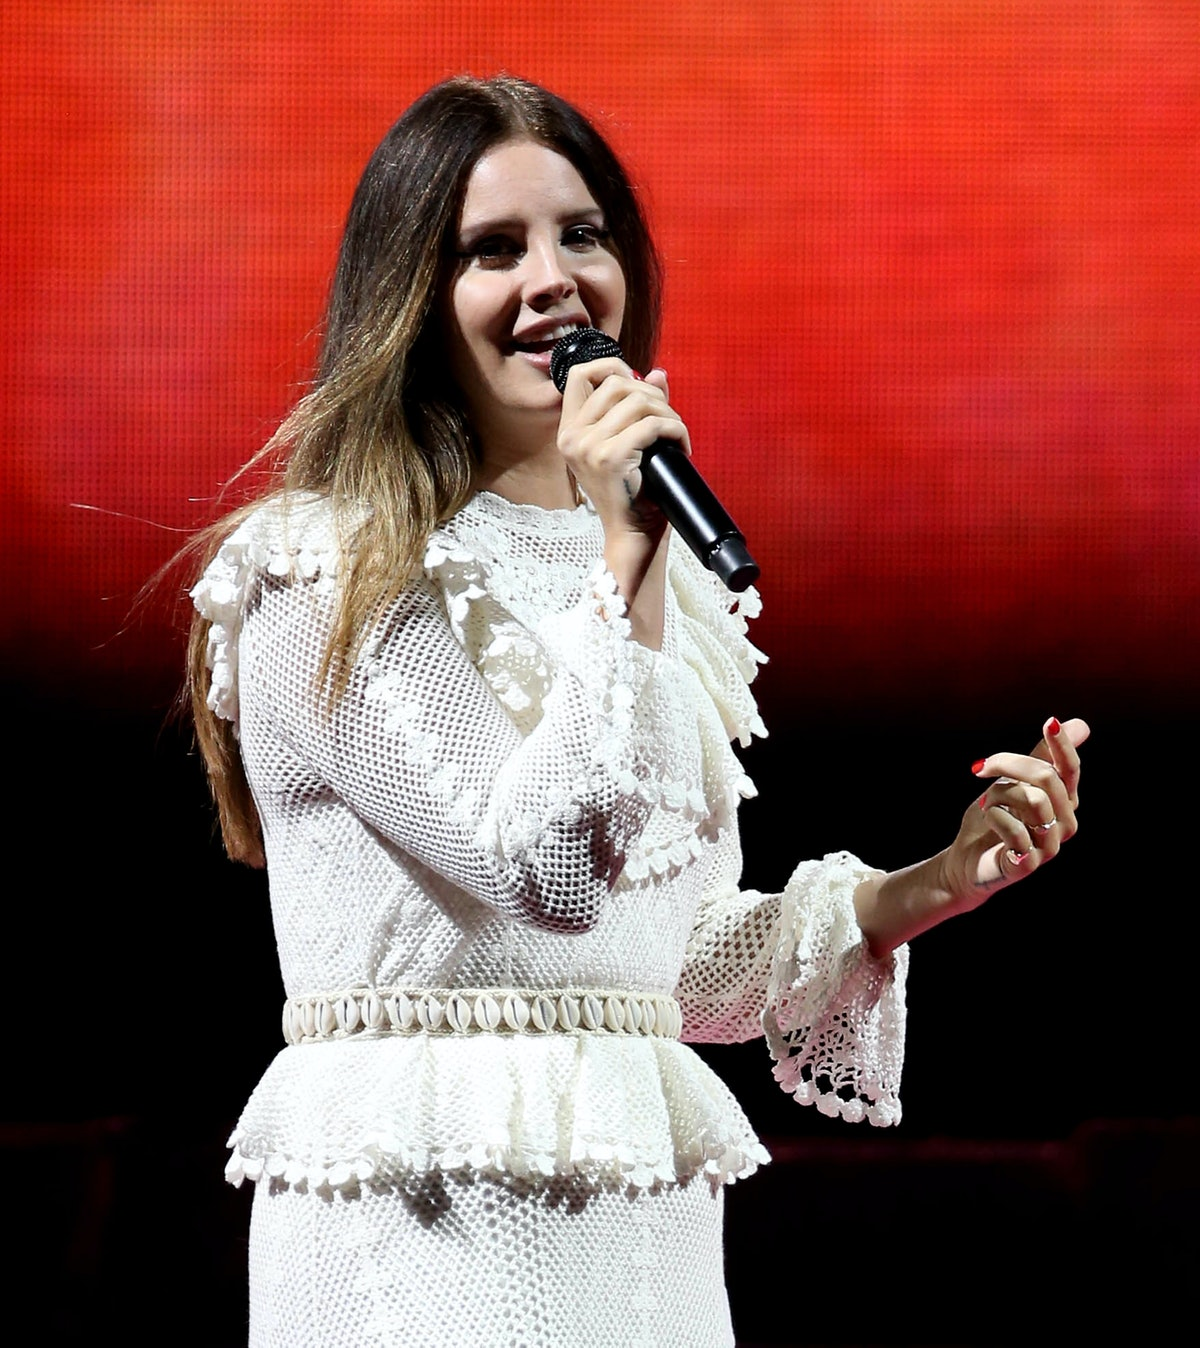 Lana Del Rey hits the stage in a ruffled white dress.